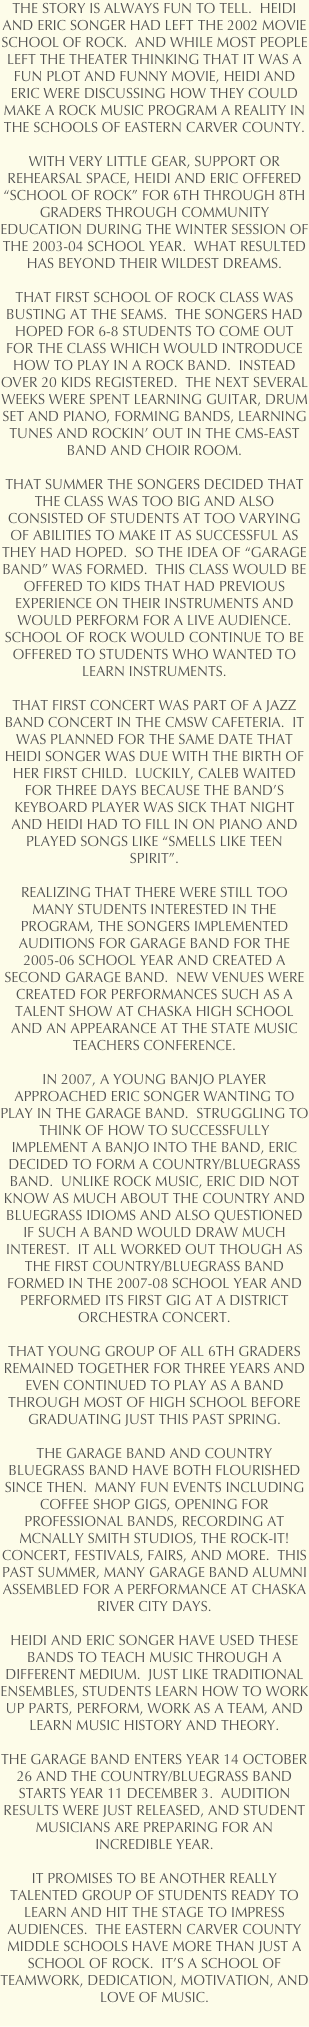 THE STORY IS ALWAYS FUN TO TELL.  HEIDI AND ERIC SONGER HAD LEFT THE 2002 MOVIE SCHOOL OF ROCK.  AND WHILE MOST PEOPLE LEFT THE THEATER THINKING THAT IT WAS A FUN PLOT AND FUNNY MOVIE, HEIDI AND ERIC WERE DISCUSSING HOW THEY COULD MAKE A ROCK MUSIC PROGRAM A REALITY IN THE SCHOOLS OF EASTERN CARVER COUNTY.